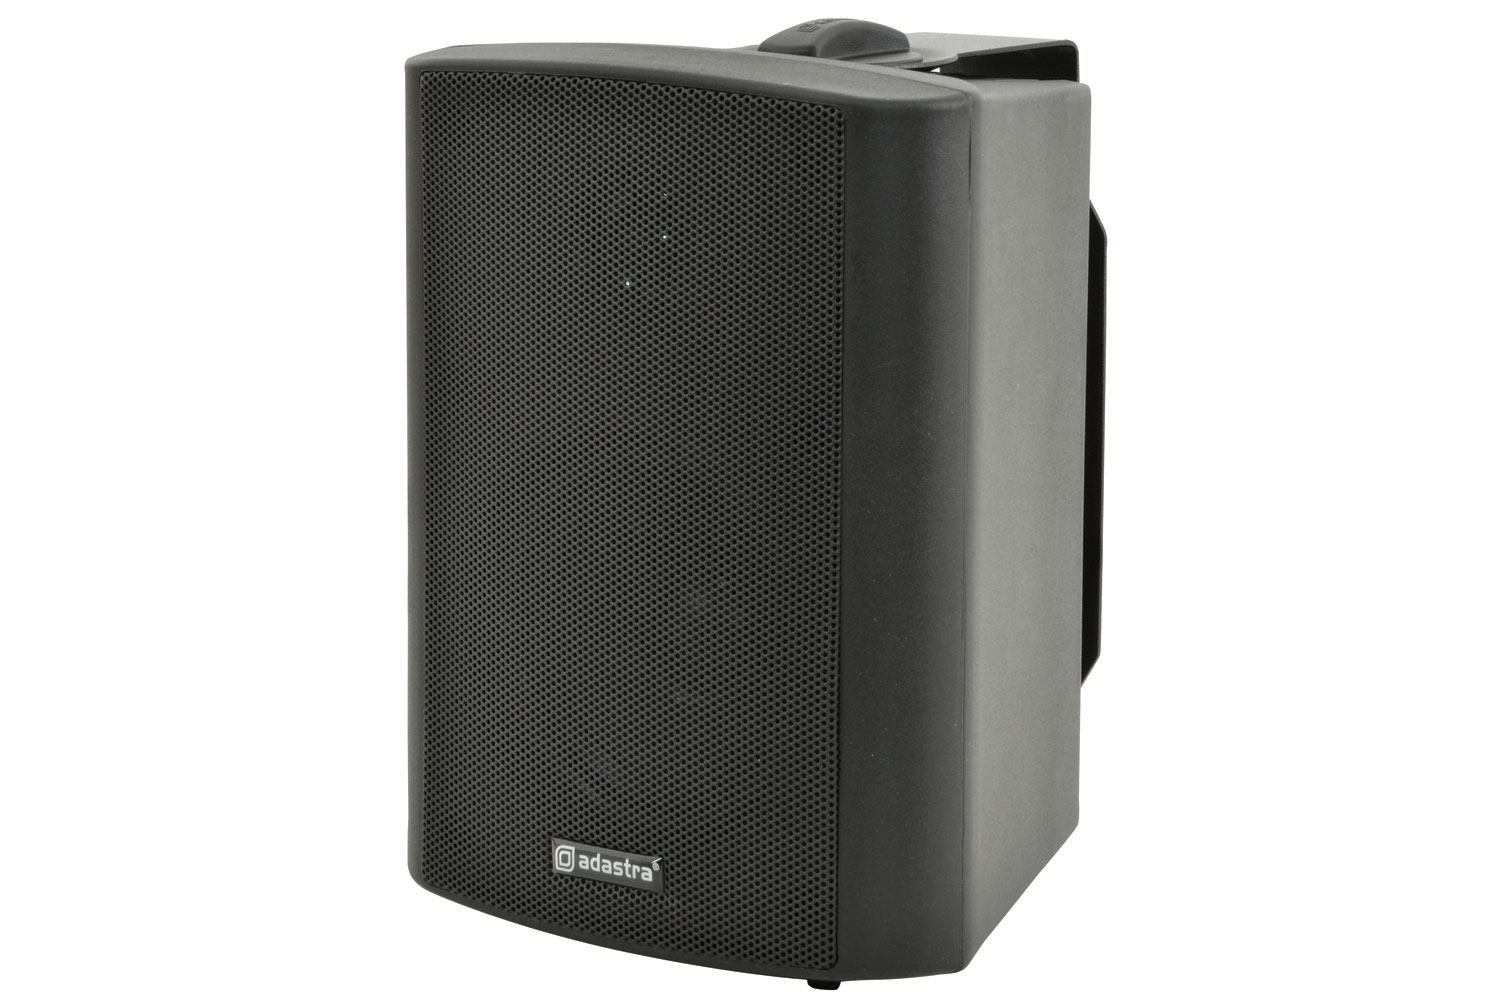 Adastra 952.813UK loudspeaker 2-way 35 W Black Wired